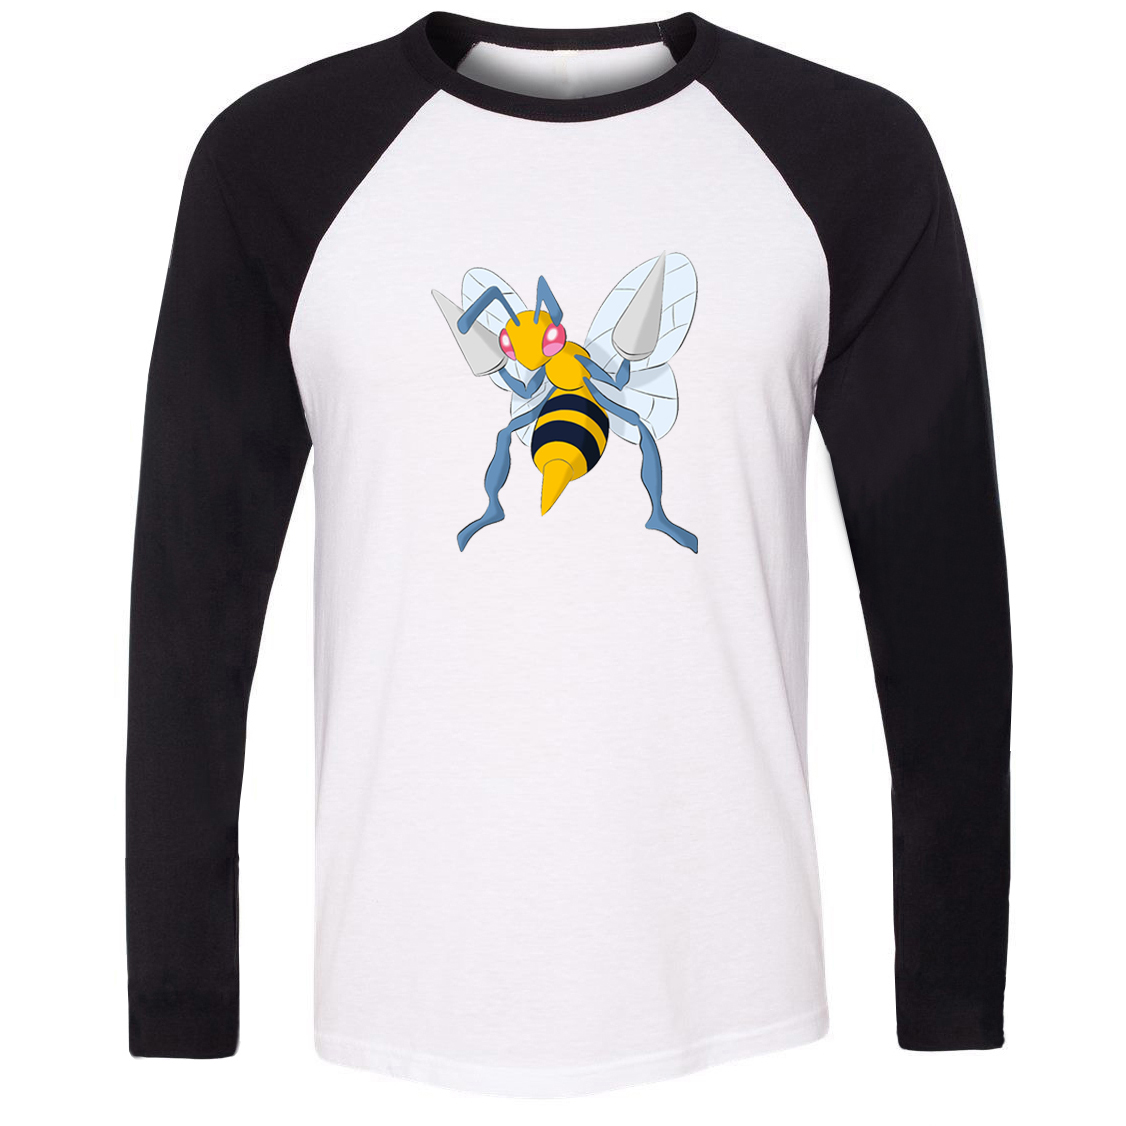 Unisex T-shirt Pokemon National Pokedex 015 Bug Poison Type Beedrill Pattern Raglan Long Sleeve Men T shirt Boy Casual Tee Tops image